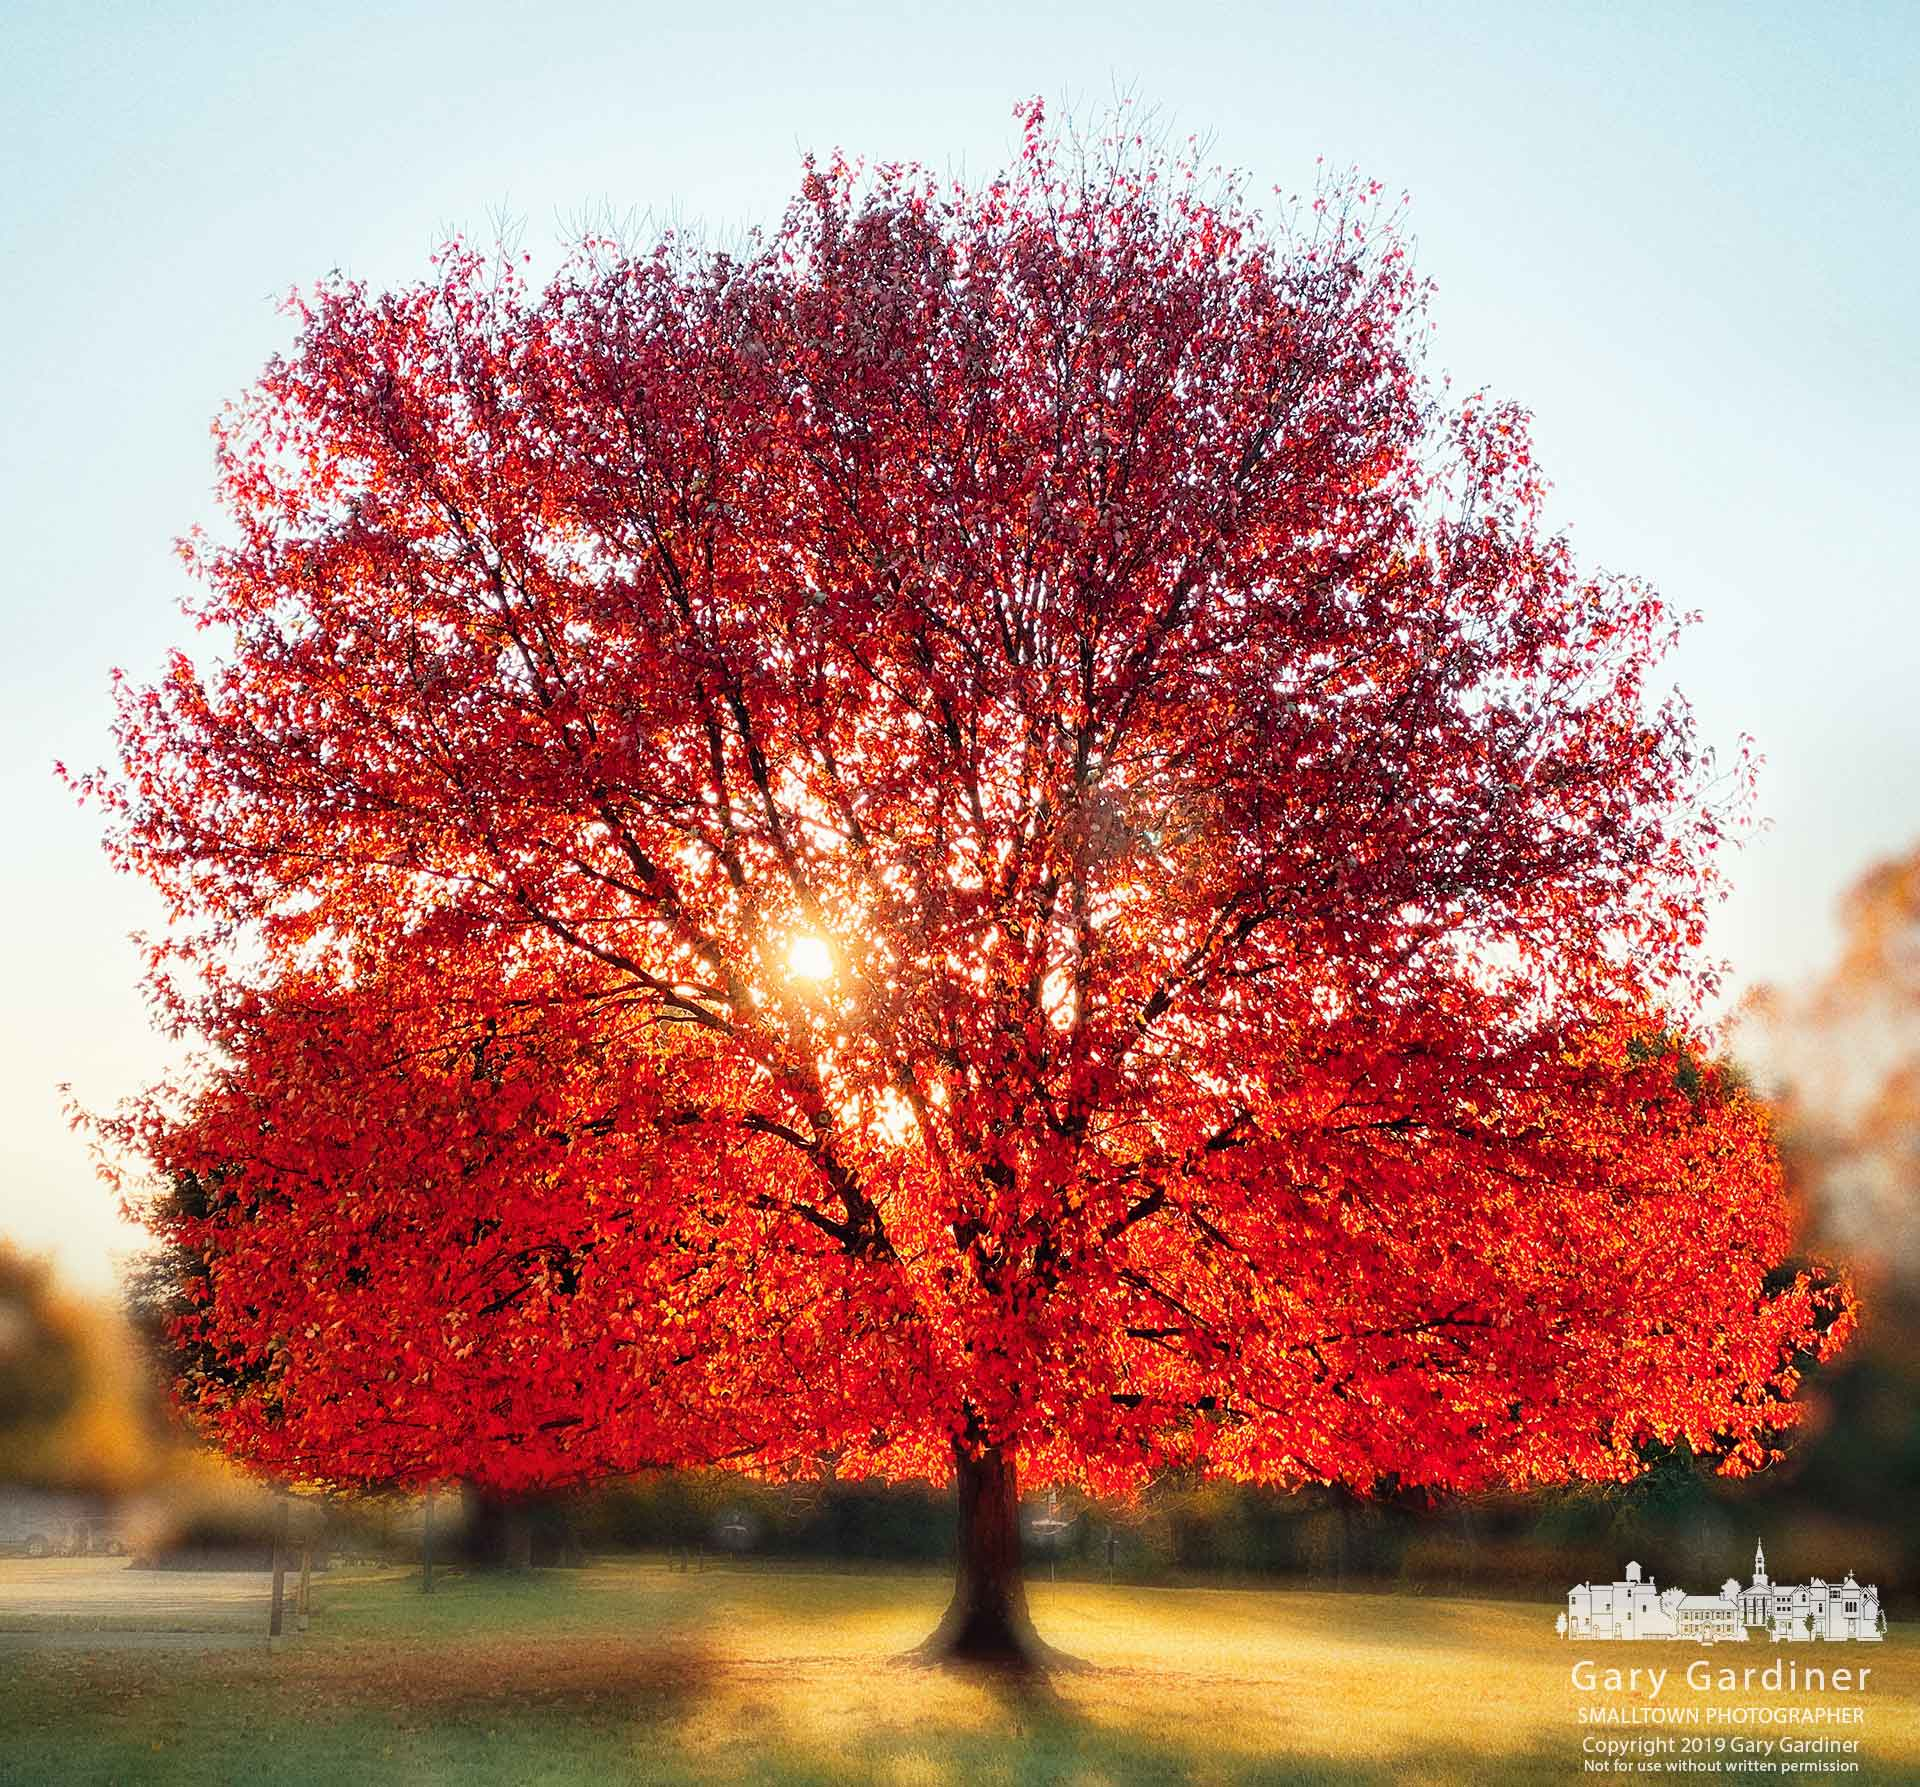 The morning sun cuts through the aptly named red maple leaves of the tree that greets visitors to the parking lot at Innswood Metro Gardens. My Final Photo for Oct. 23, 2019.